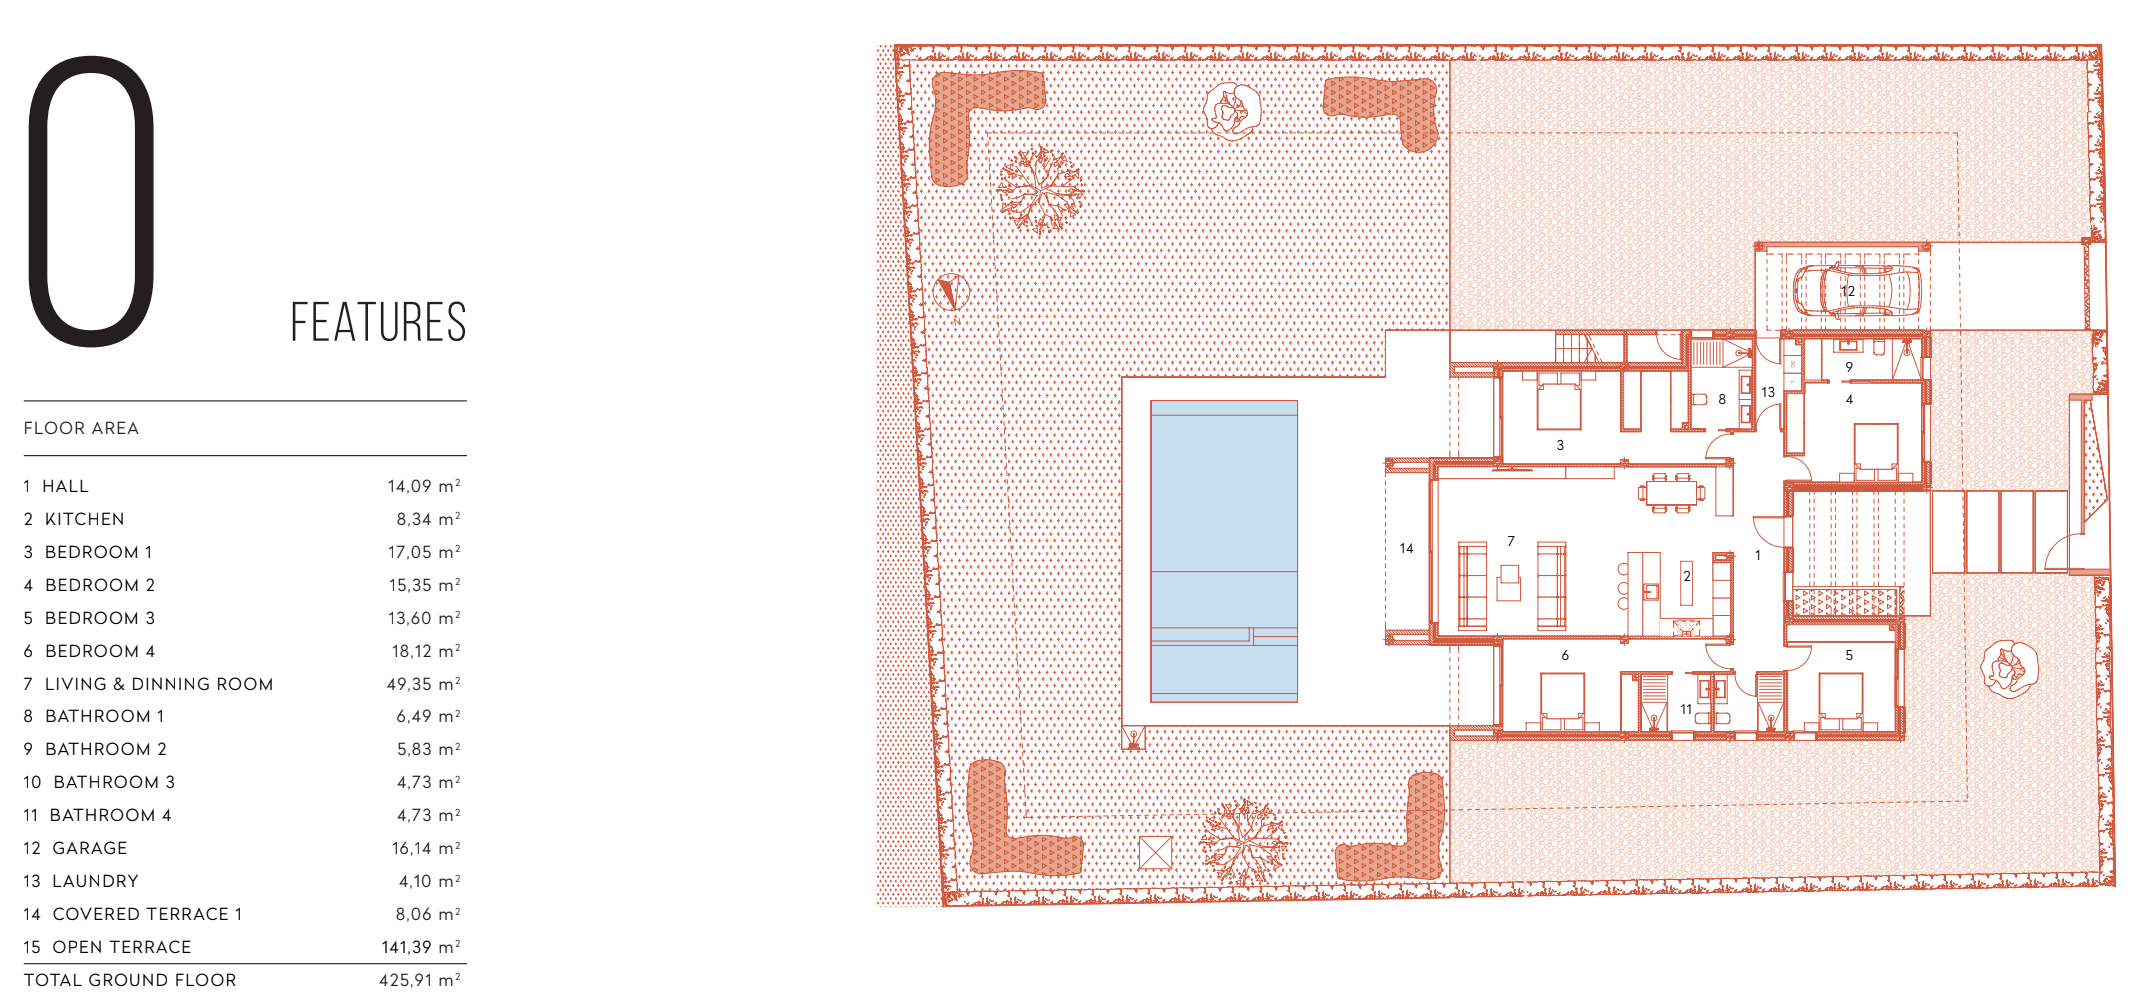 Floor plan for Villa de Lujo ref 3068 for sale in Altaona Golf And Country Village Spain - Quality Homes Costa Cálida